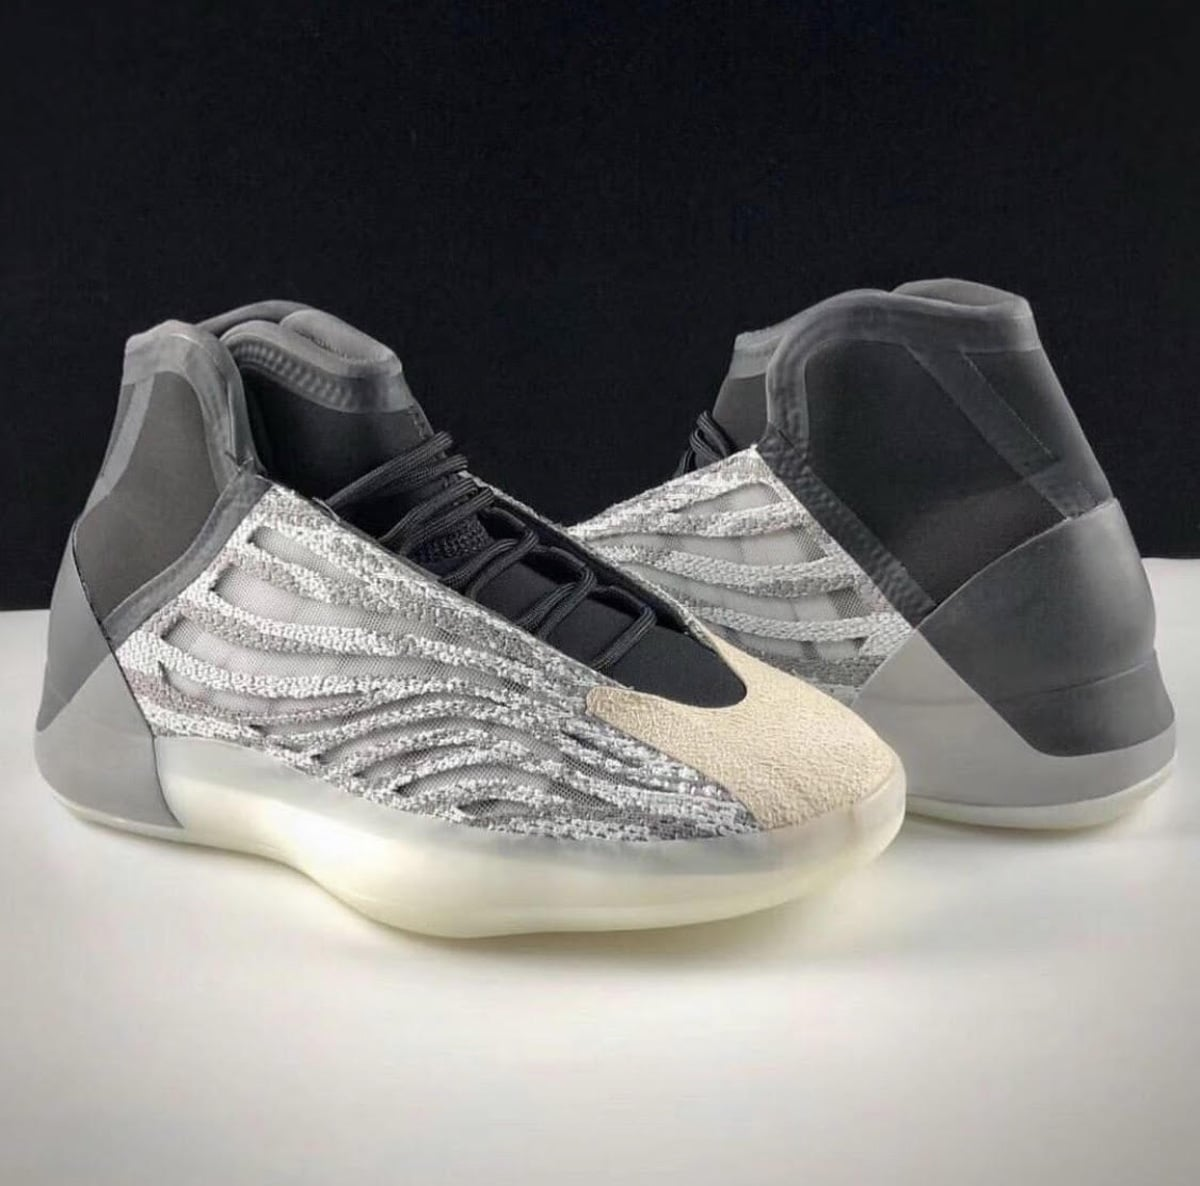 Our Best Look Yet at the adidas Yeezy Basketball Shoe